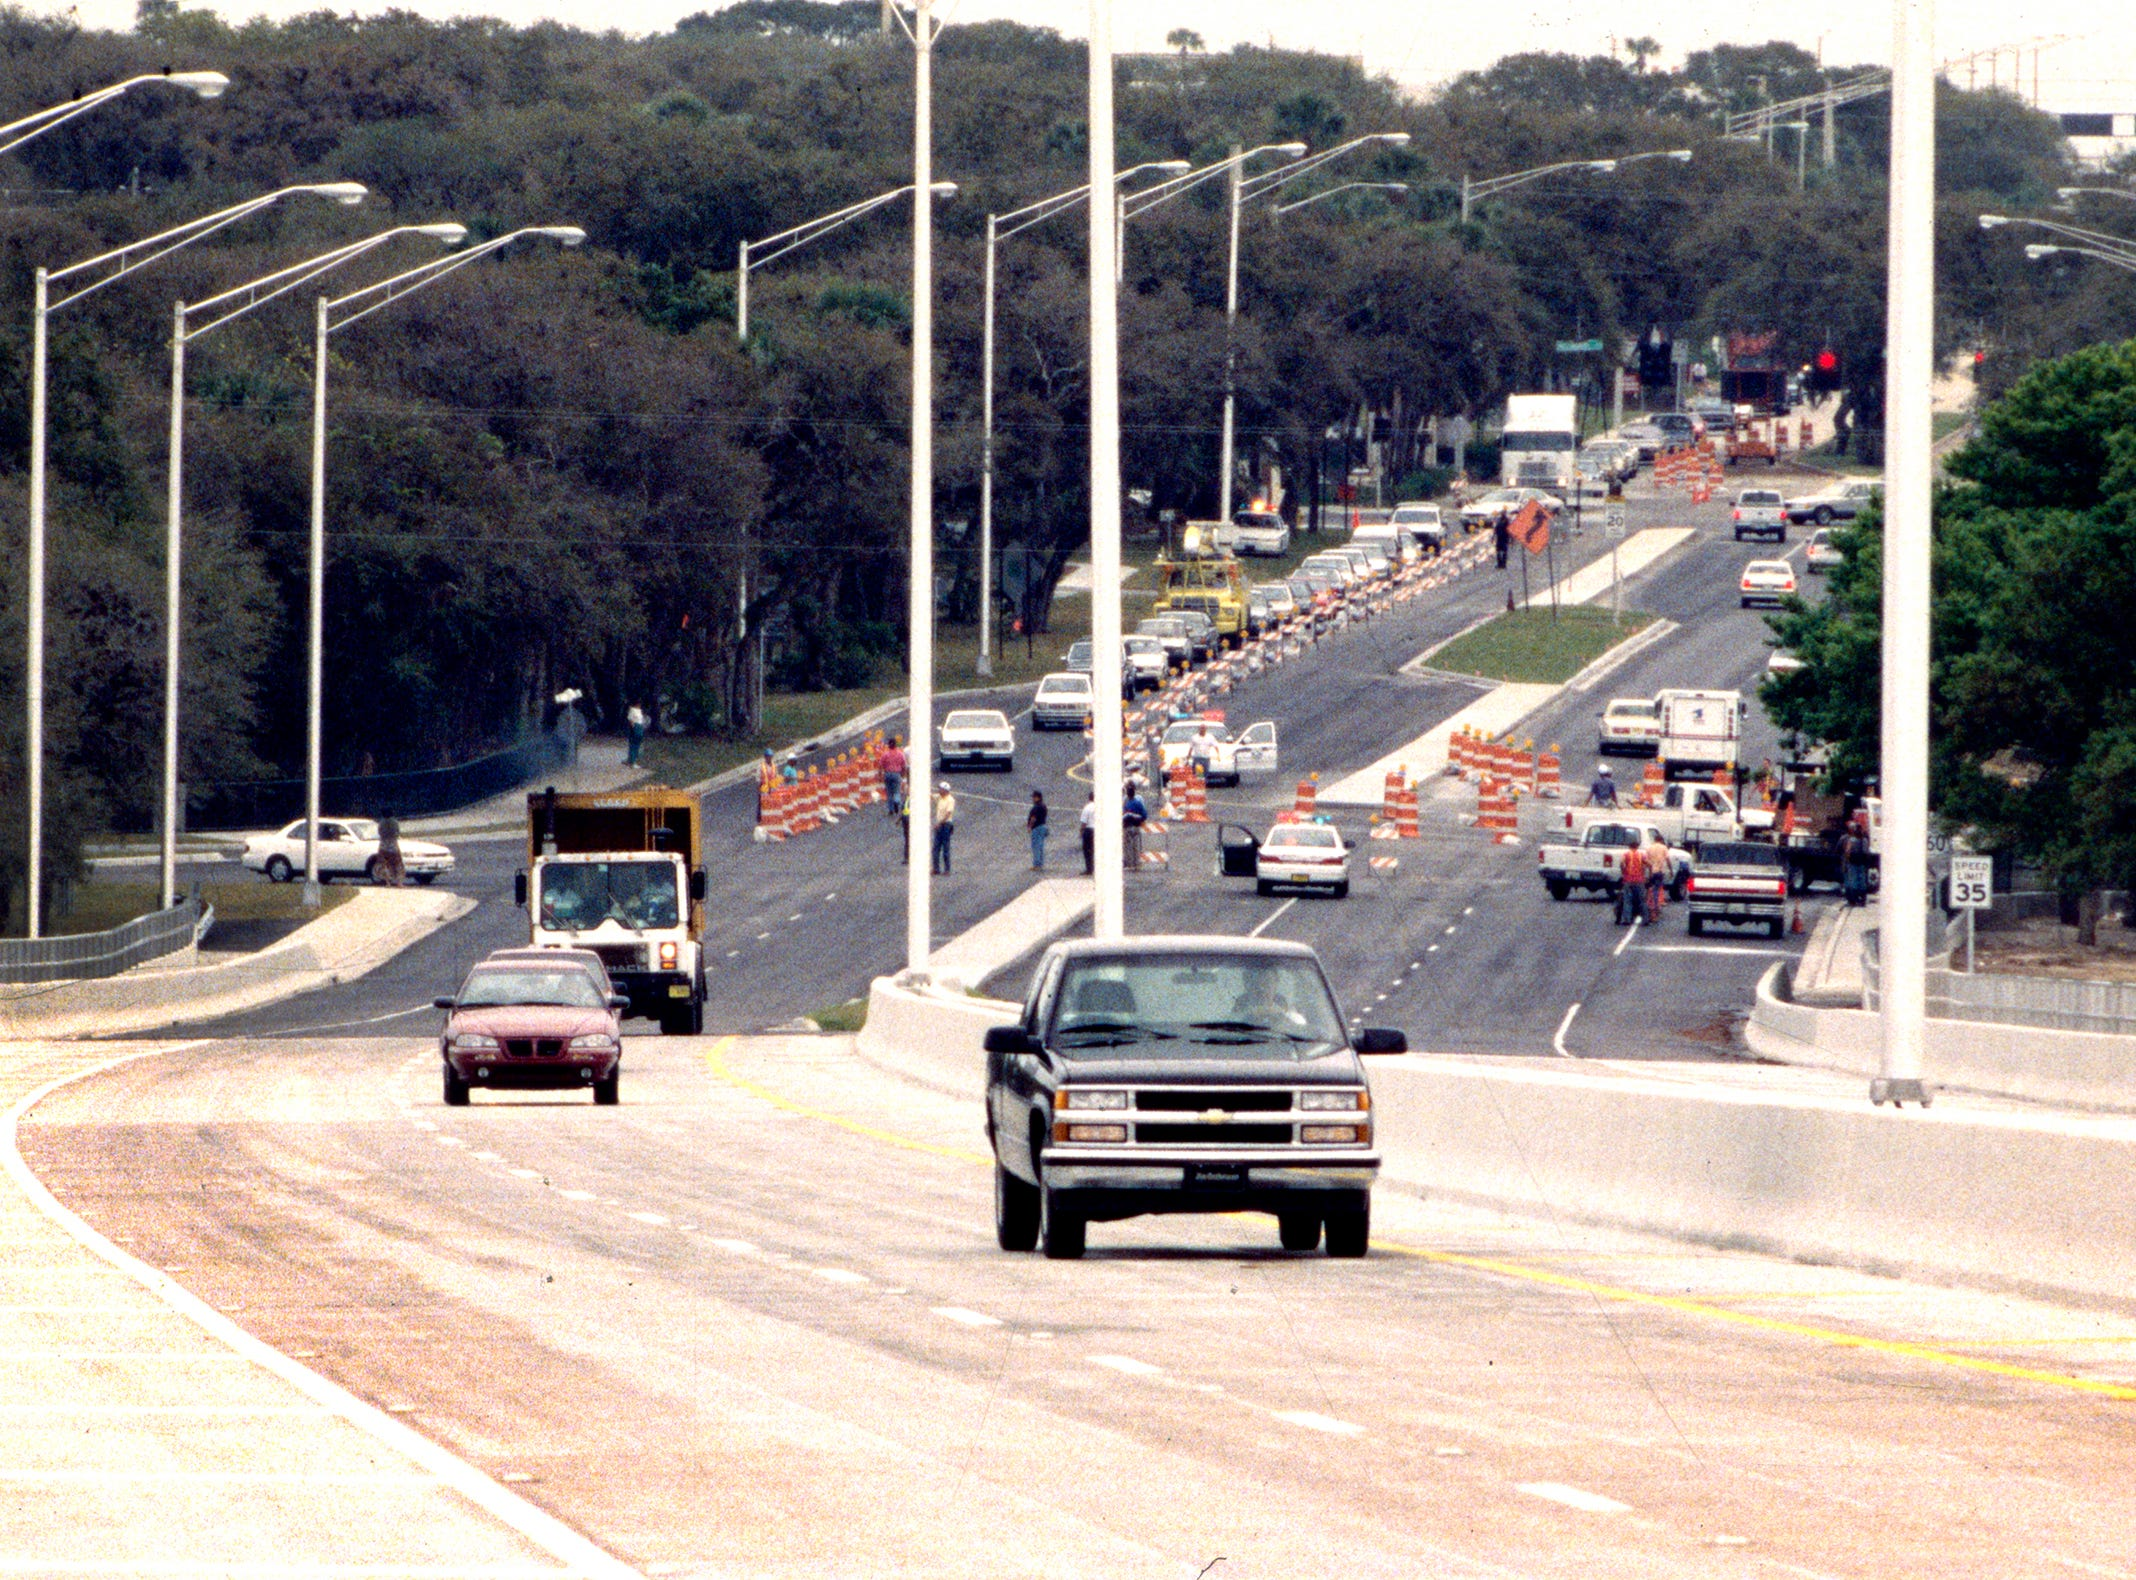 March 1, 1995 - The first motorists on the brand new Merrill P. Barber Bridge were allowed to start over the span at 11:33 a.m. in Vero Beach. An early morning rainfall delayed the opening of the $26 million bridge, until they were able to dry the pavement and put down road striping. The first person to drive over the bridge was Jim Greer.